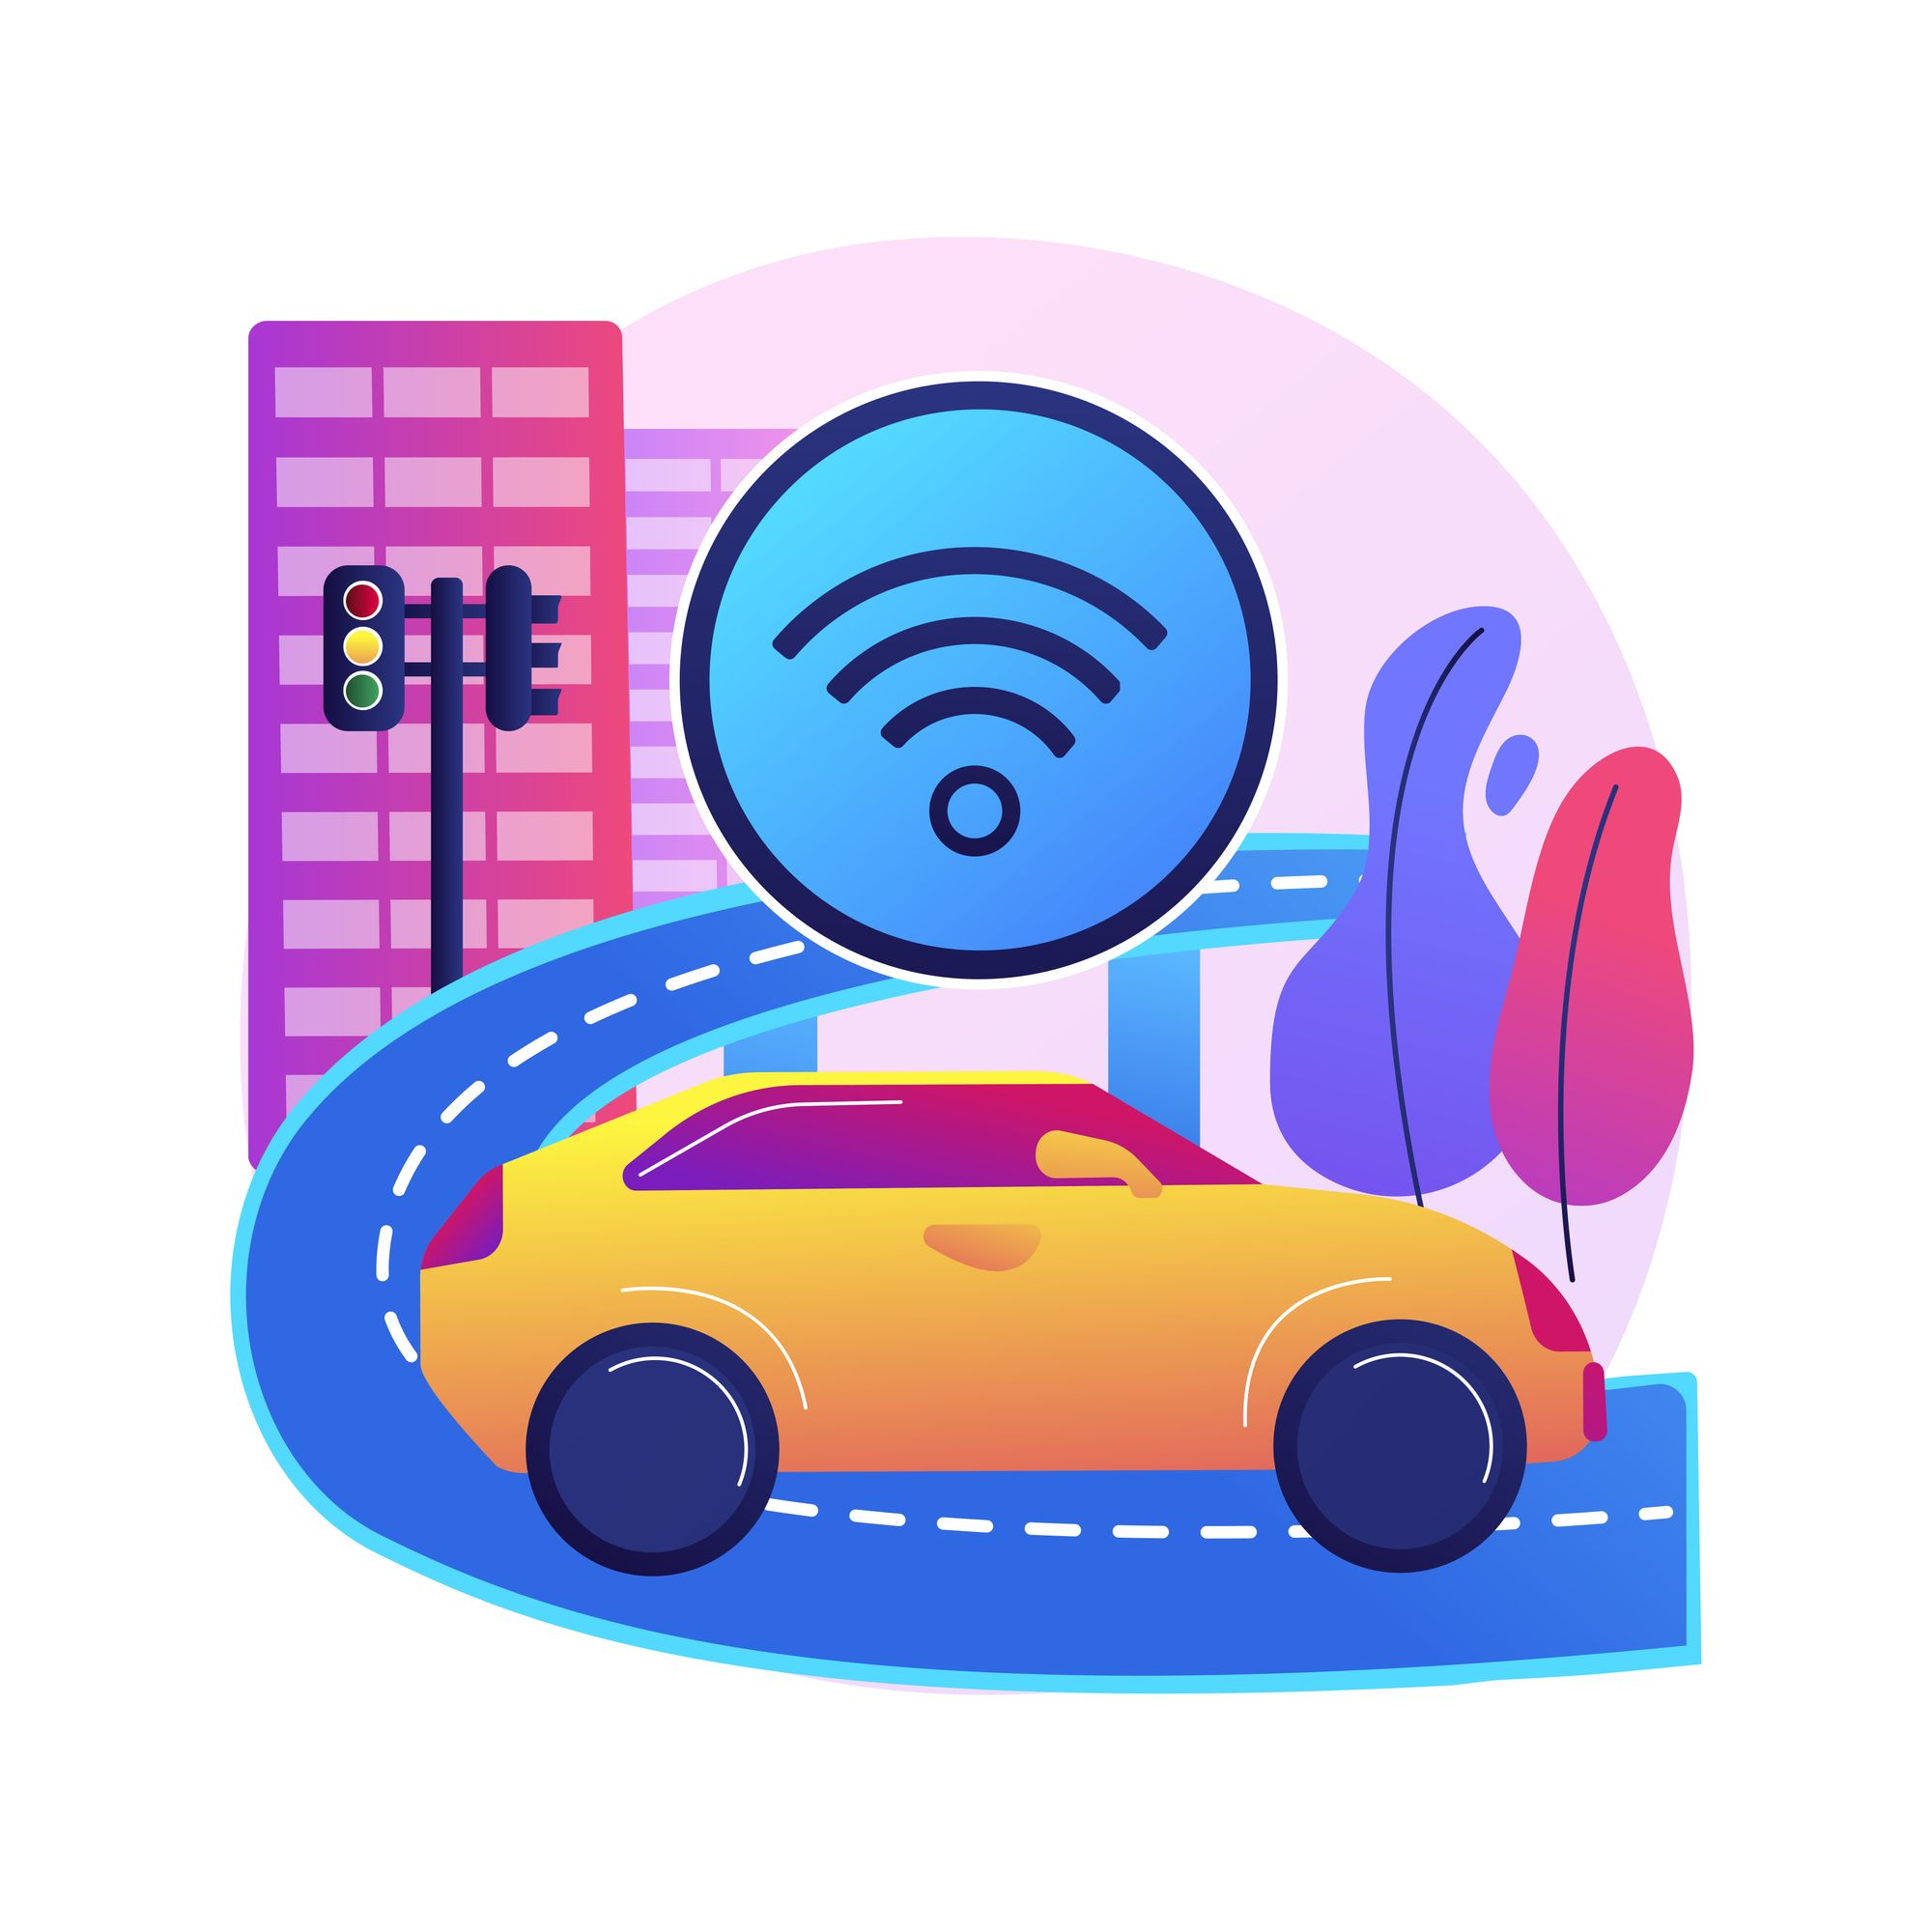 How IoT is changing the Vehicle and Transportation Sector